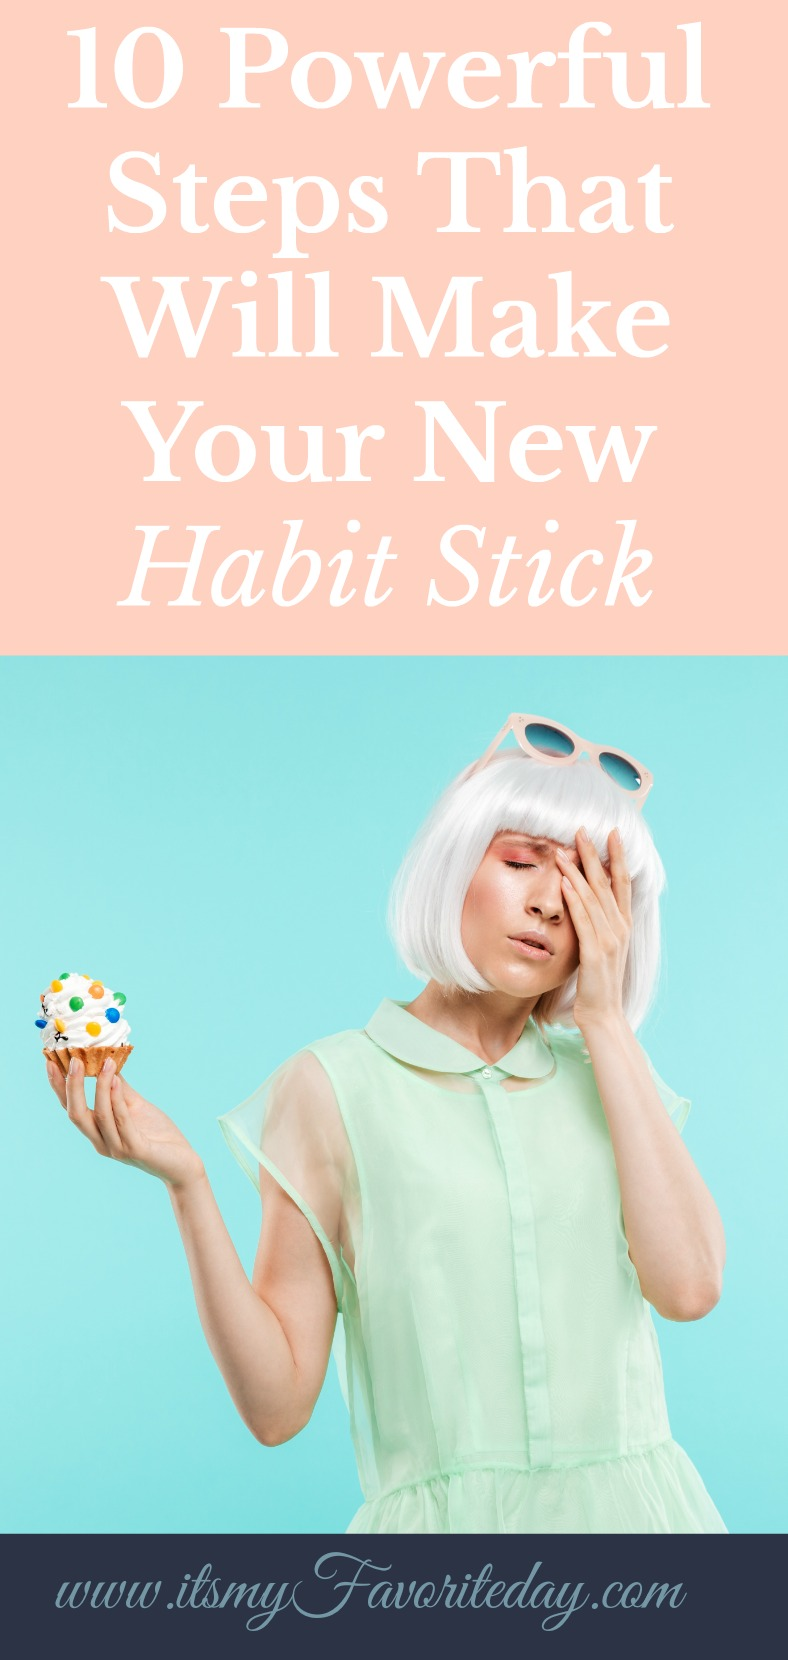 new habit stick